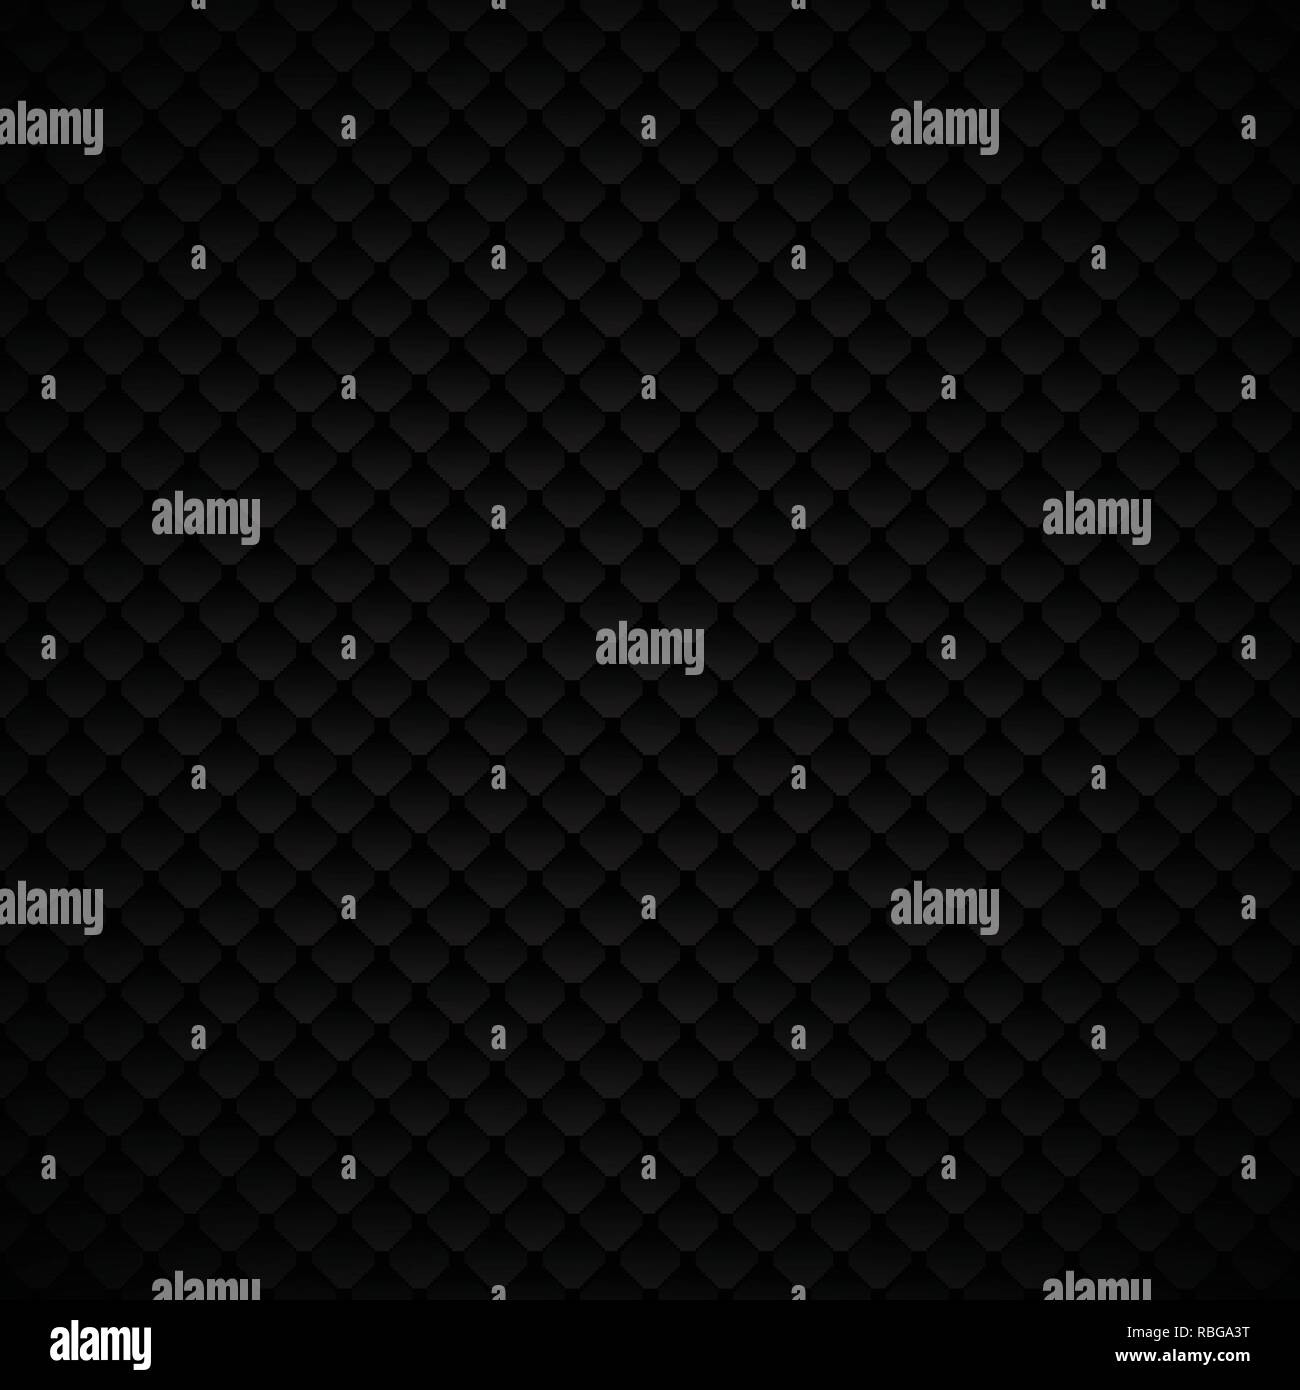 Abstract luxury black geometric squares pattern design on dark background. Luxurious texture. carbon metallic surface. Vector illustration - Stock Image